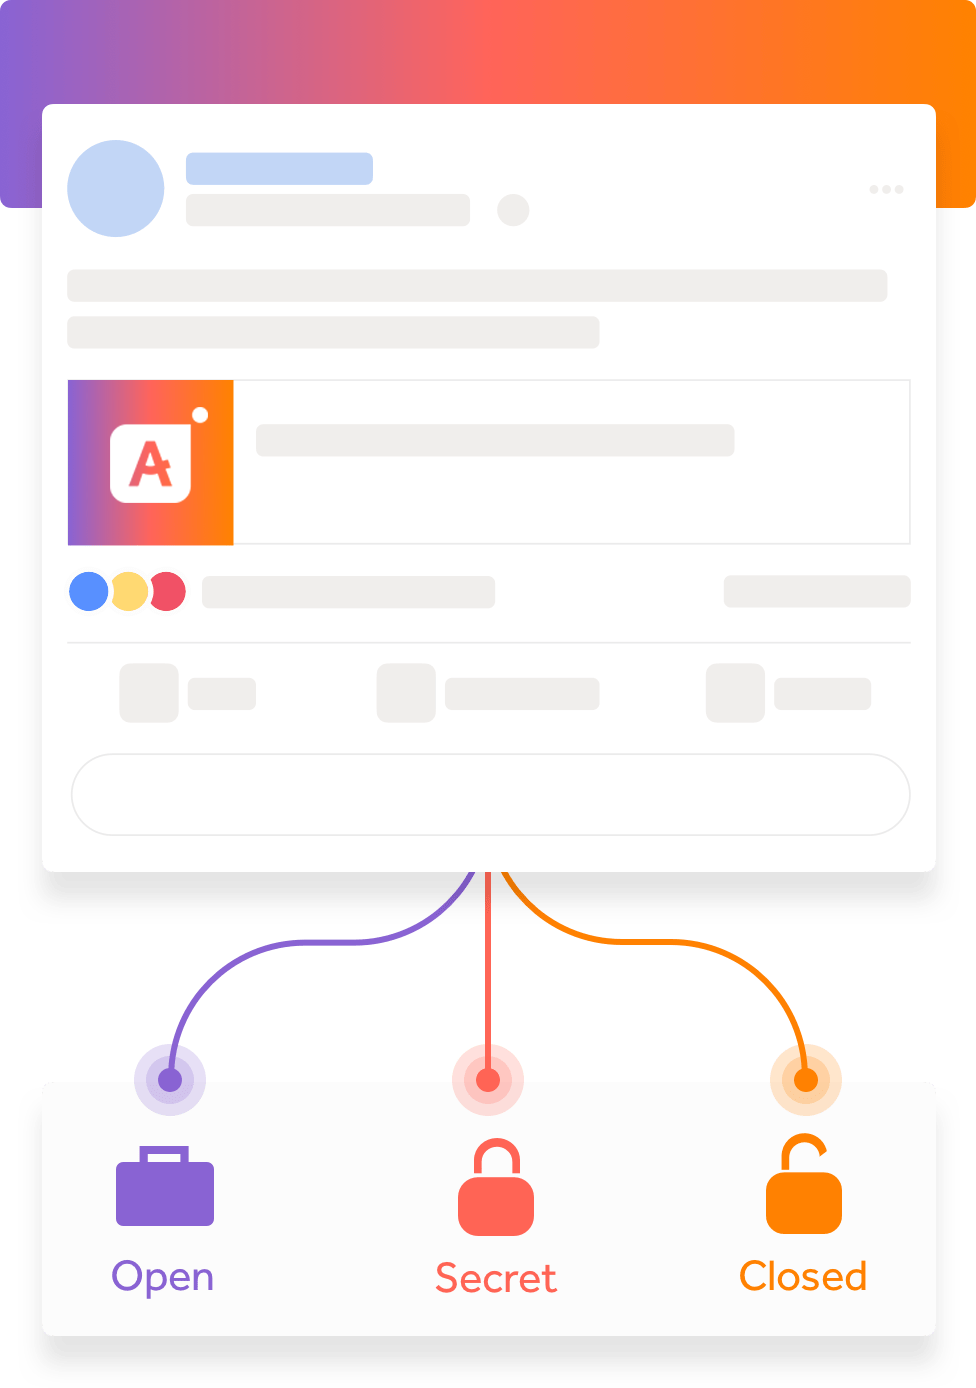 Aware can monitor and react to content anywhere within Workplace